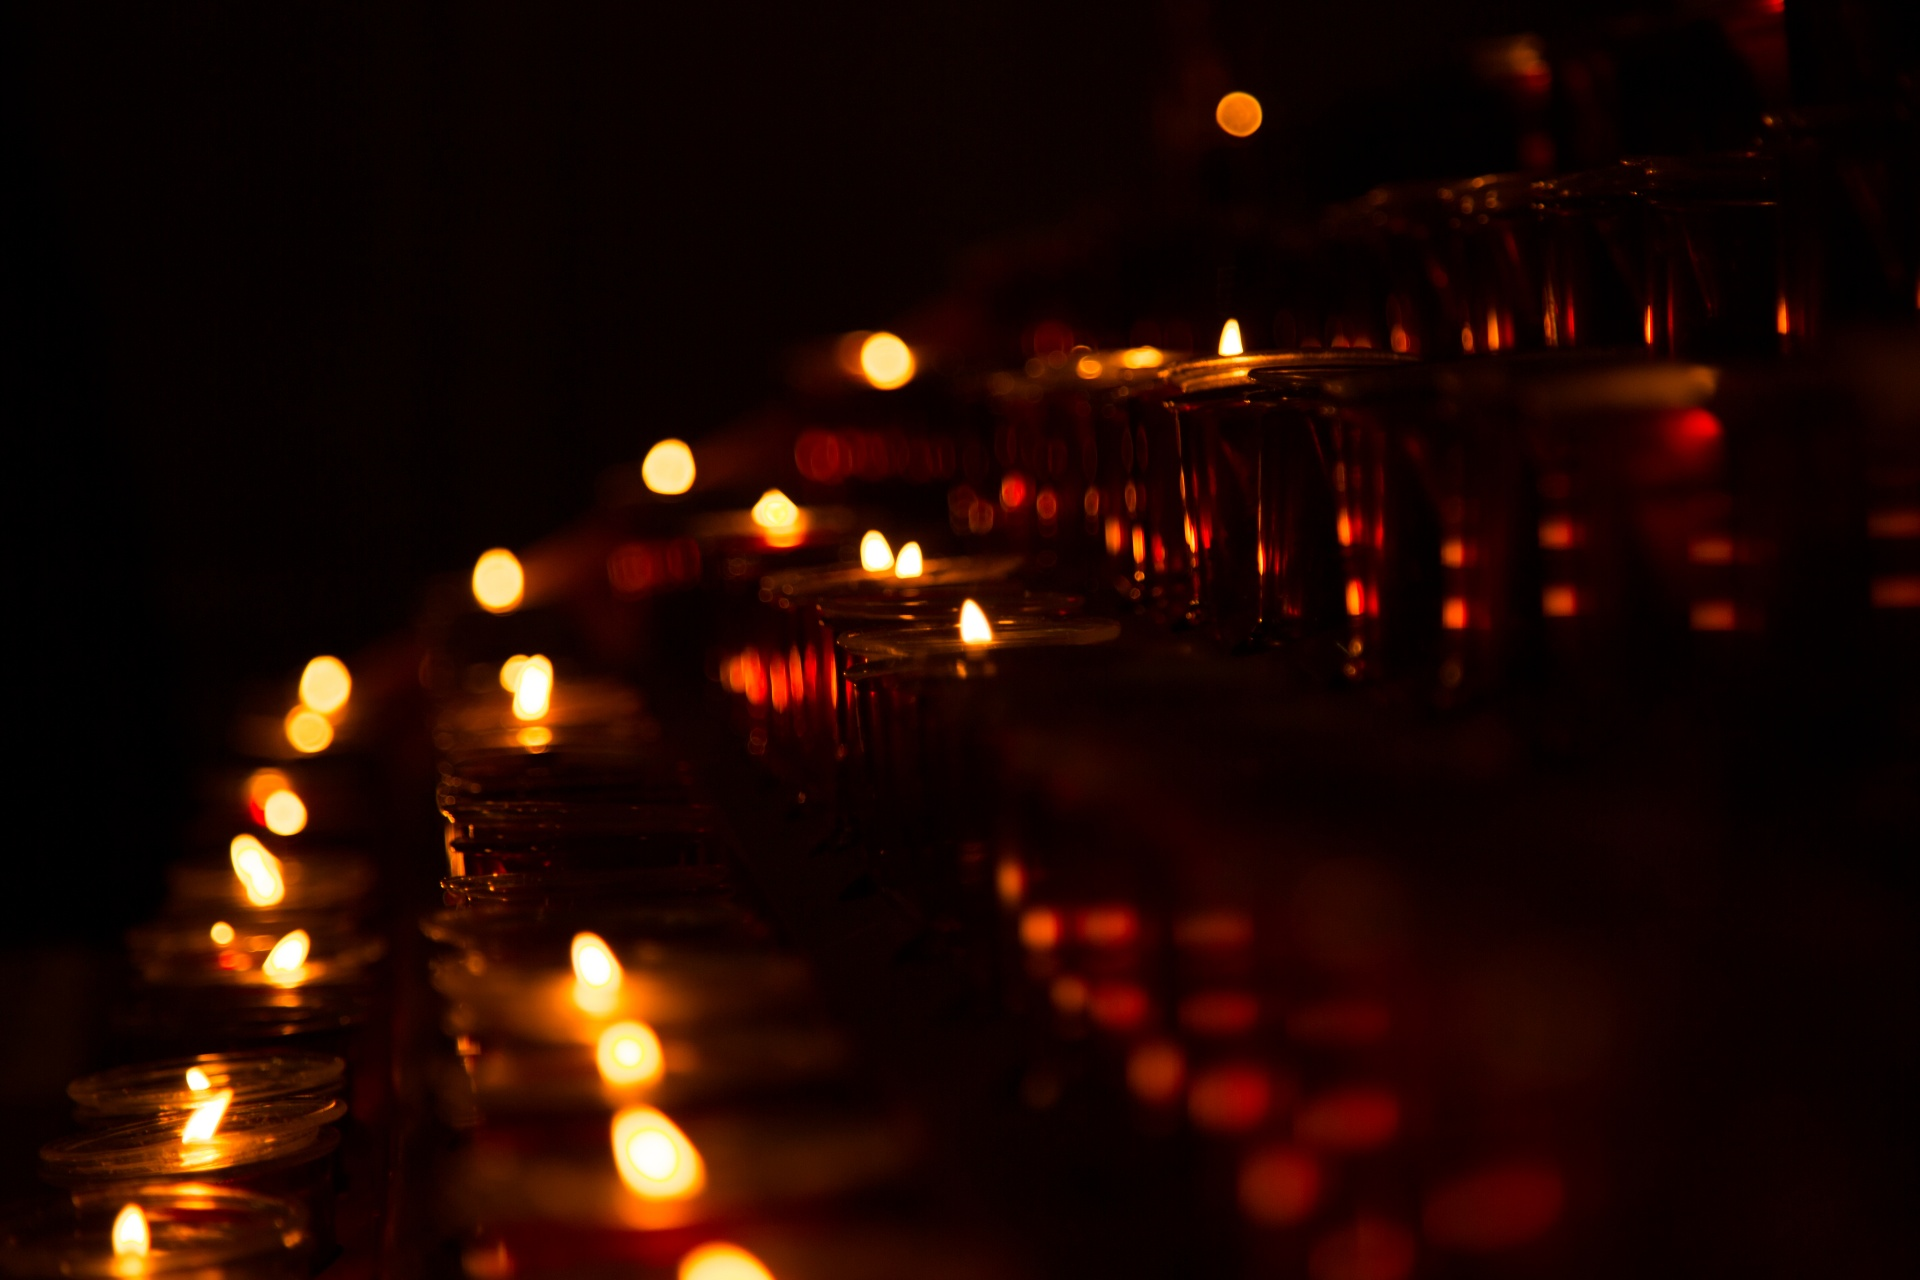 Church Candles Church Candles Free Stock Photo Public Domain Pictures